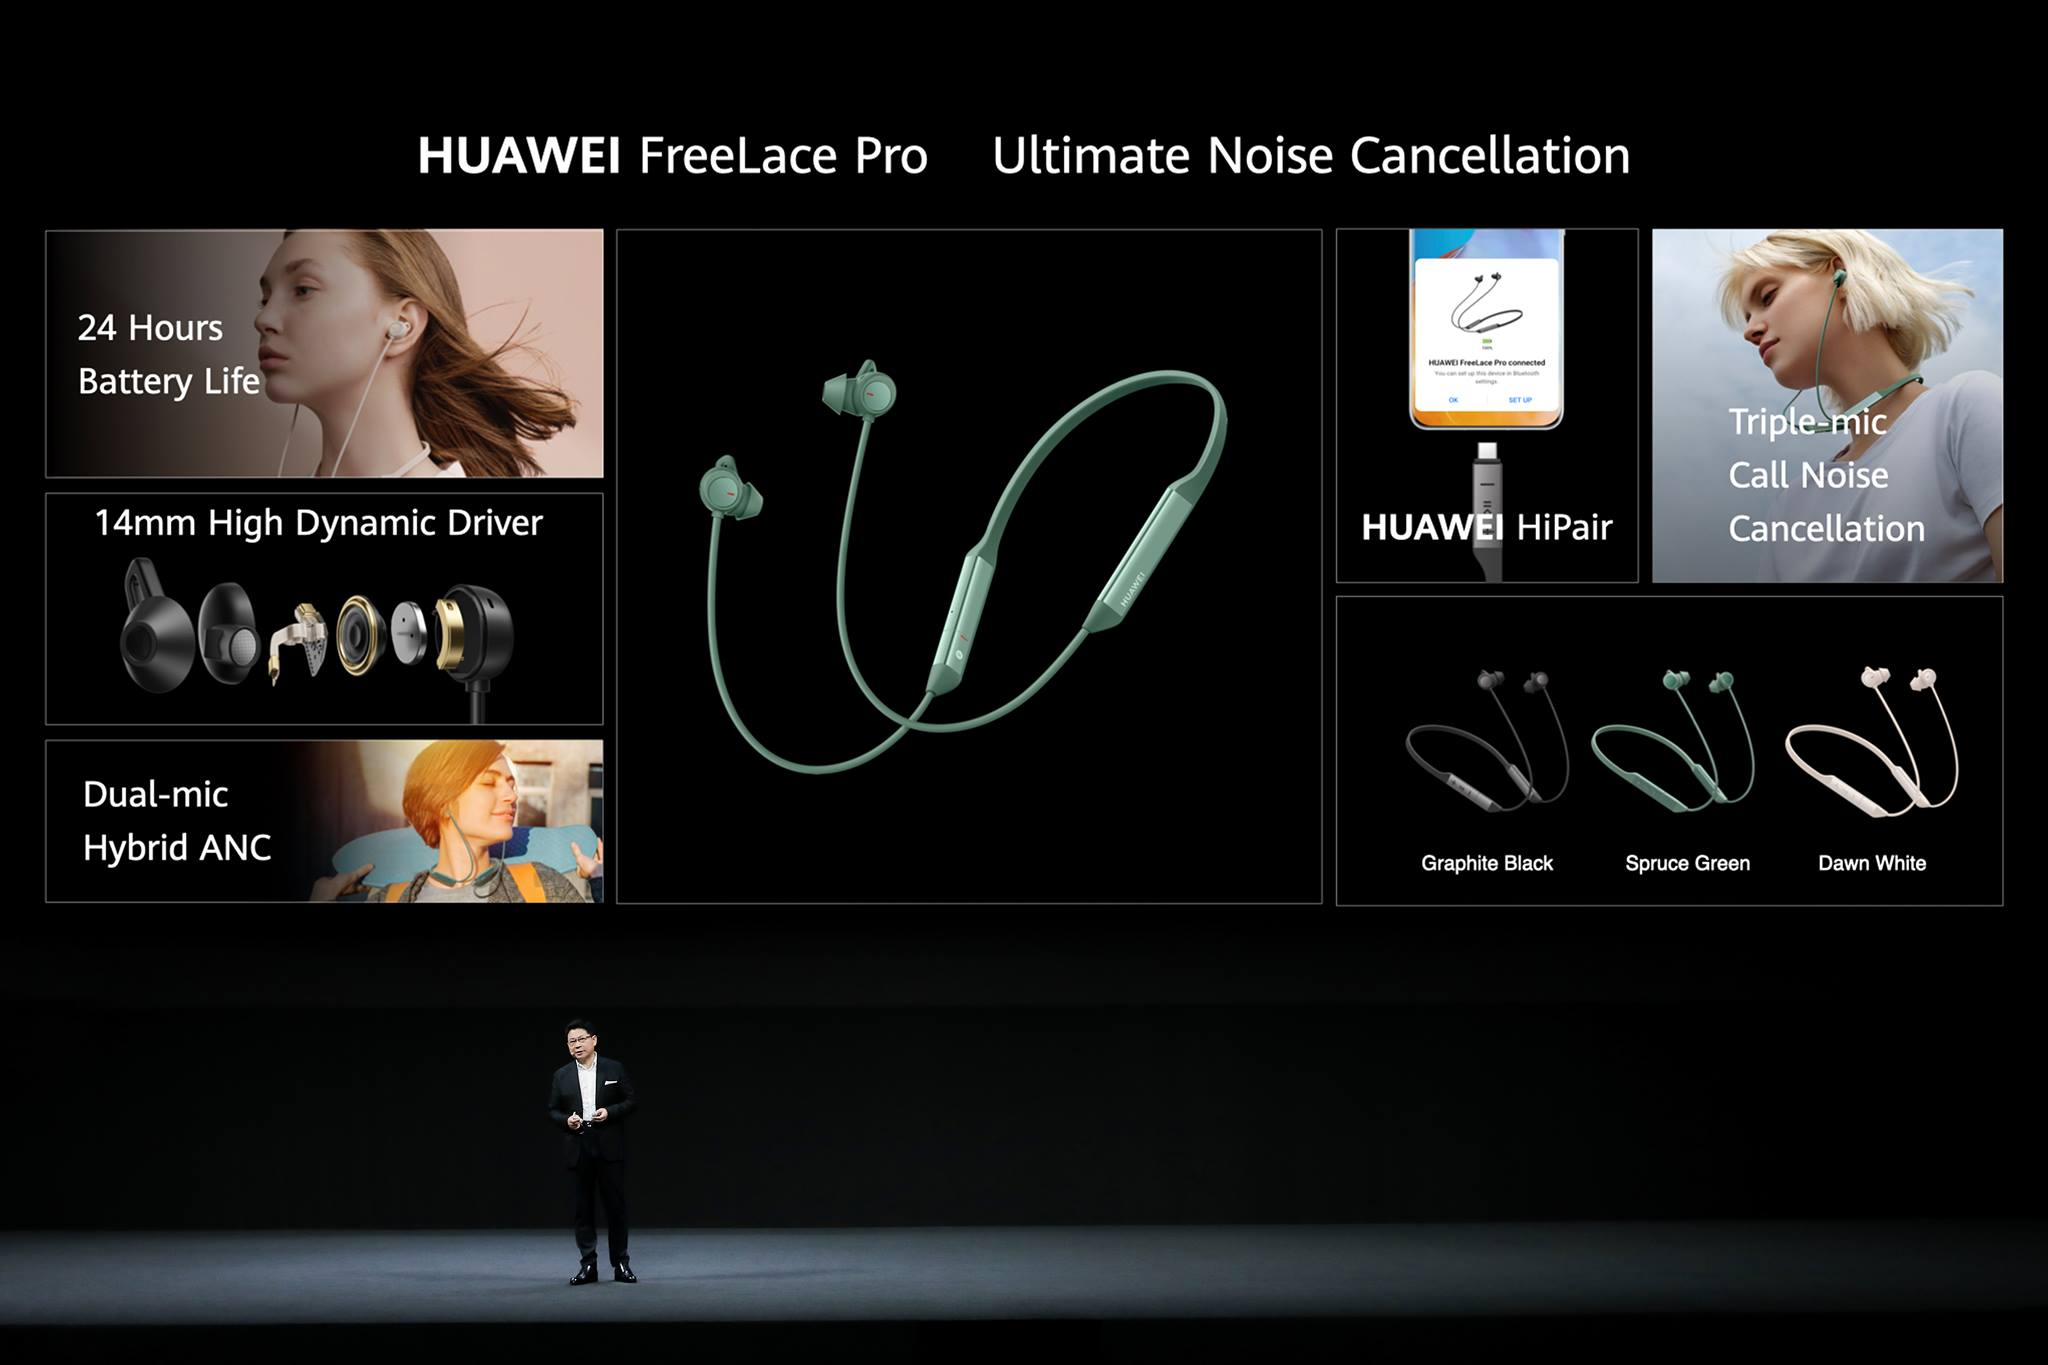 Providing long-lasting battery life, crystal clear microphone and ultimate Noise Cancellation, the #HUAWEIFreeLacePro are the wired headphones not to be missed.